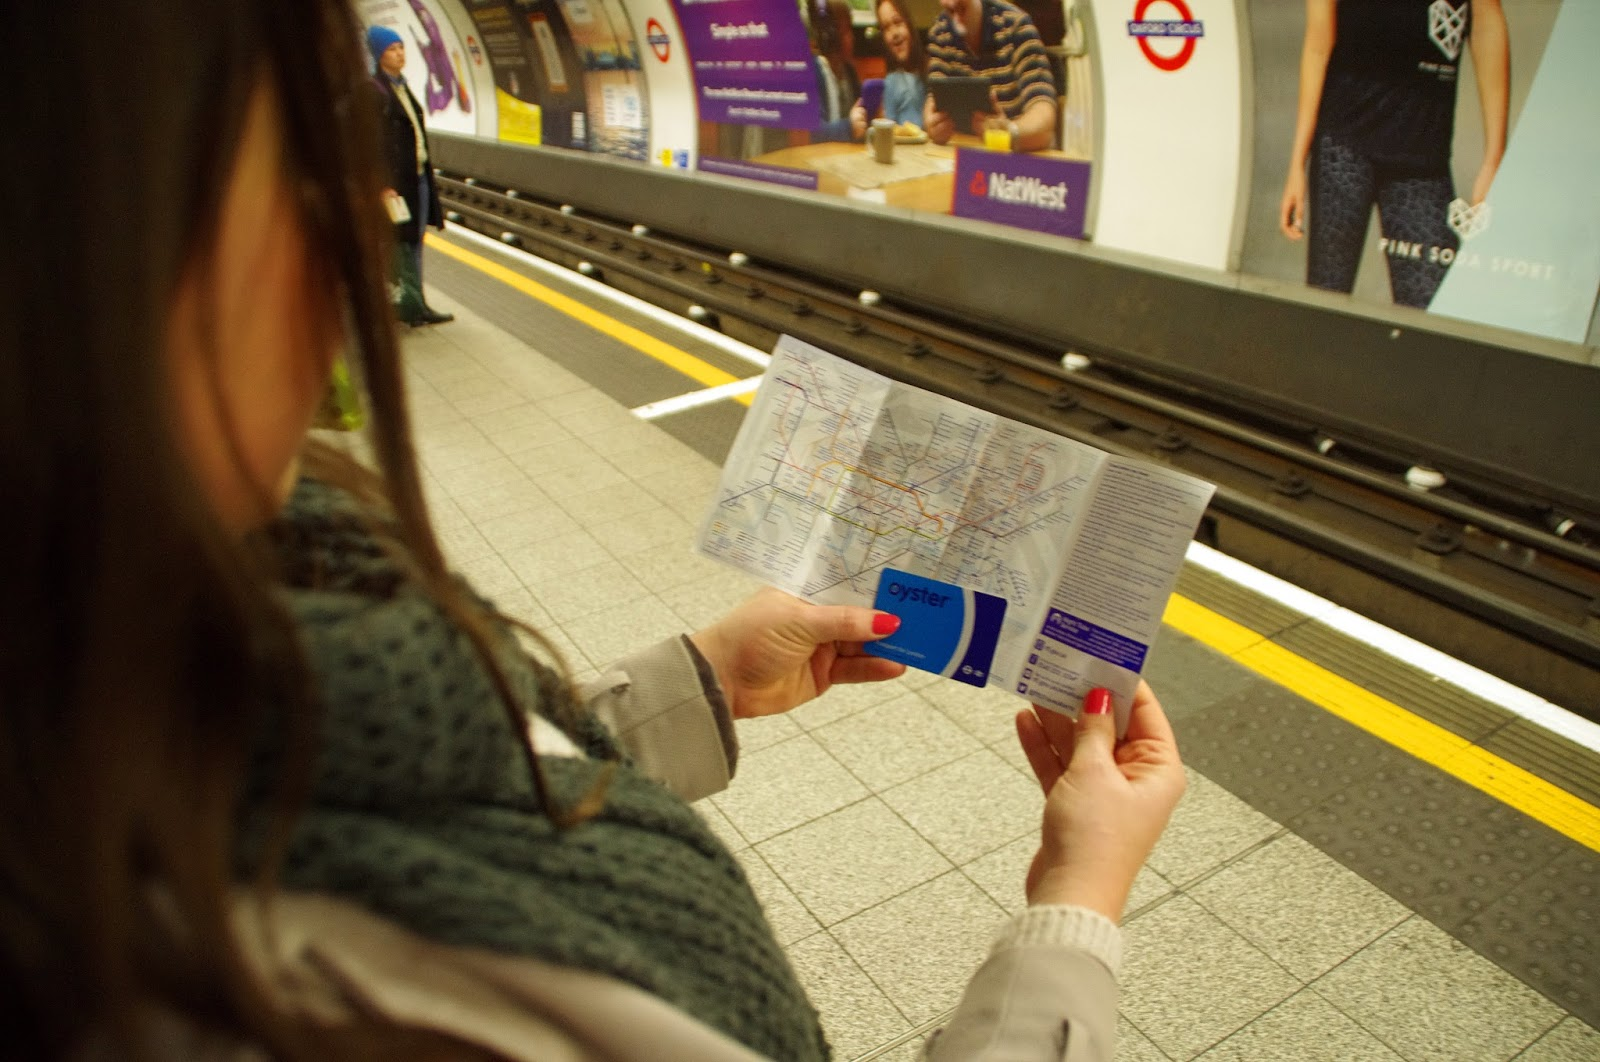 London Tube Map & Oyster Card